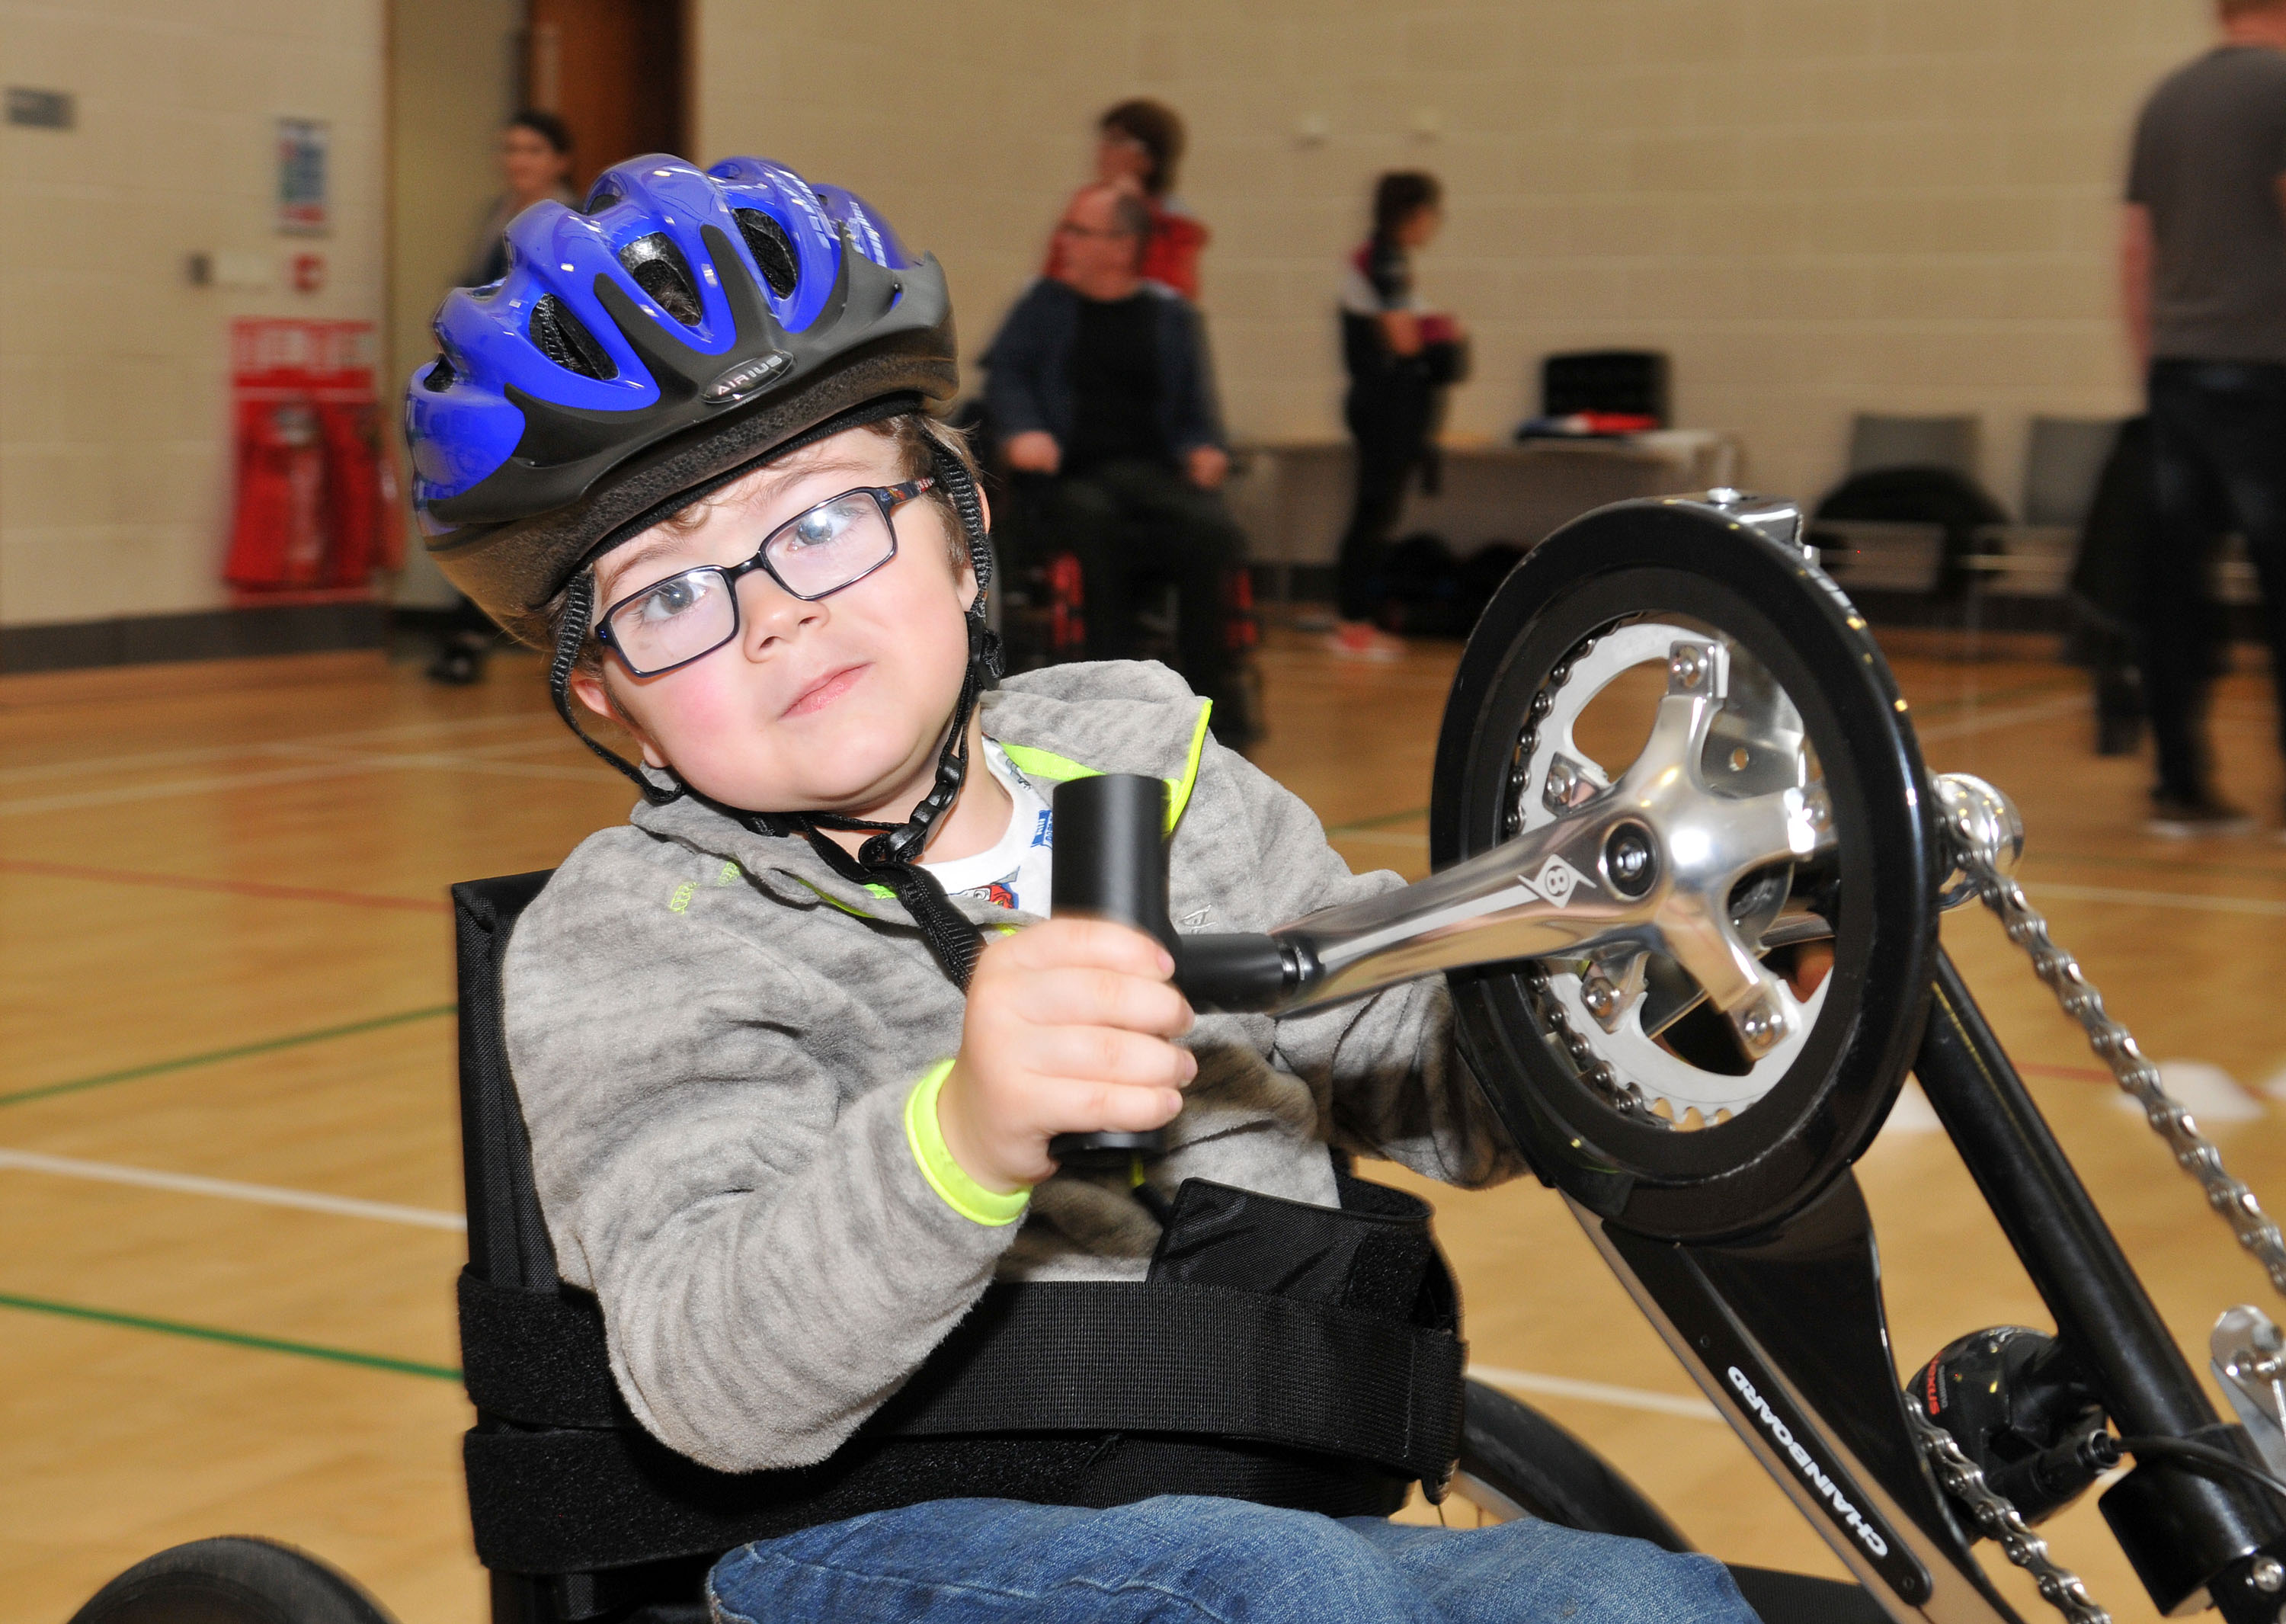 Joshua Doyle whizzing round on a hand cycle.